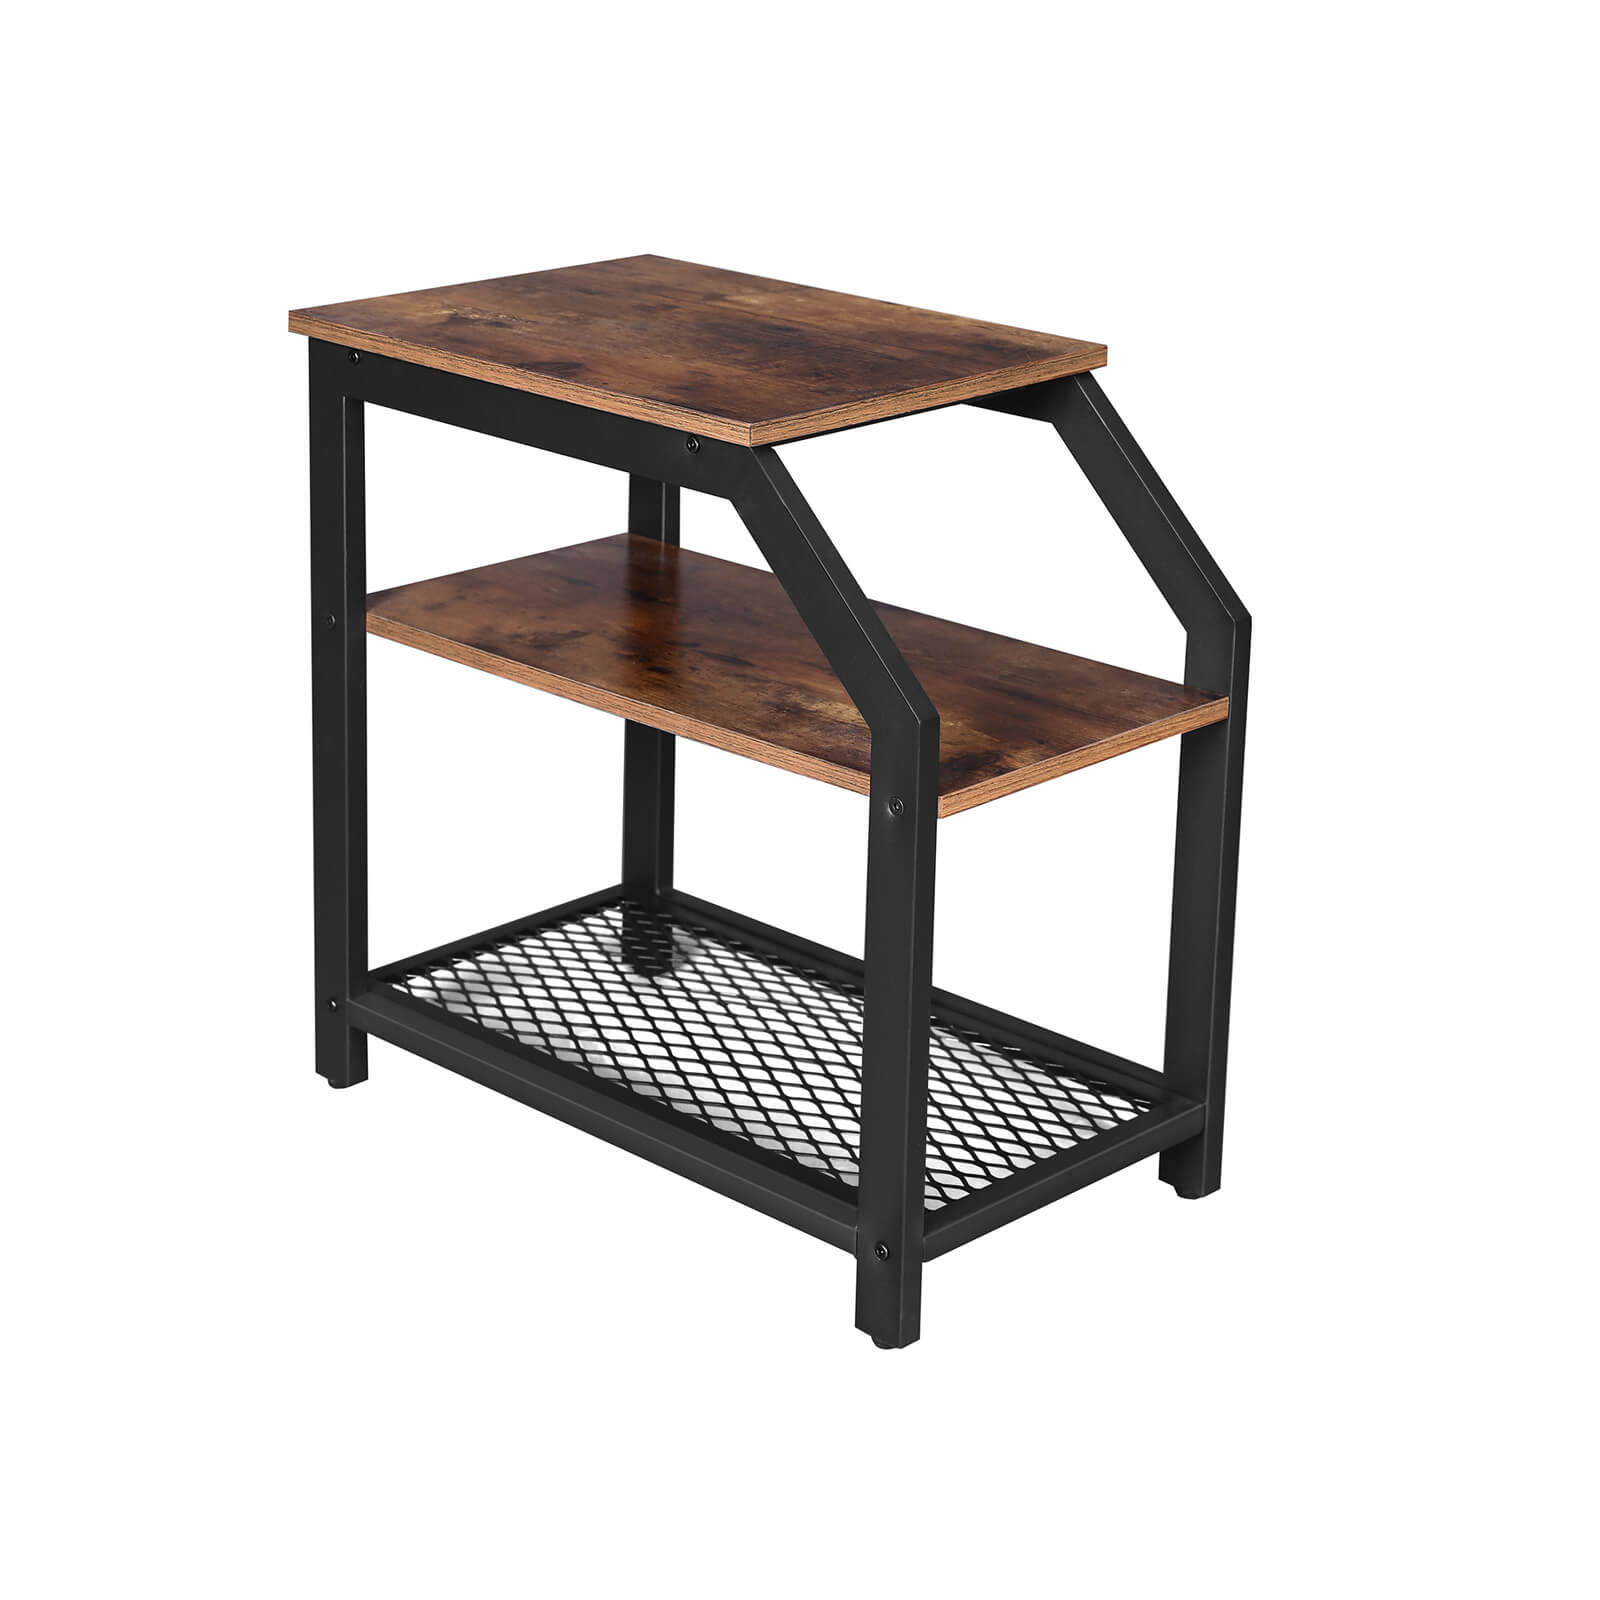 - 3-Tier Industrial Side Table - Side Table VASAGLE By SONGMICS